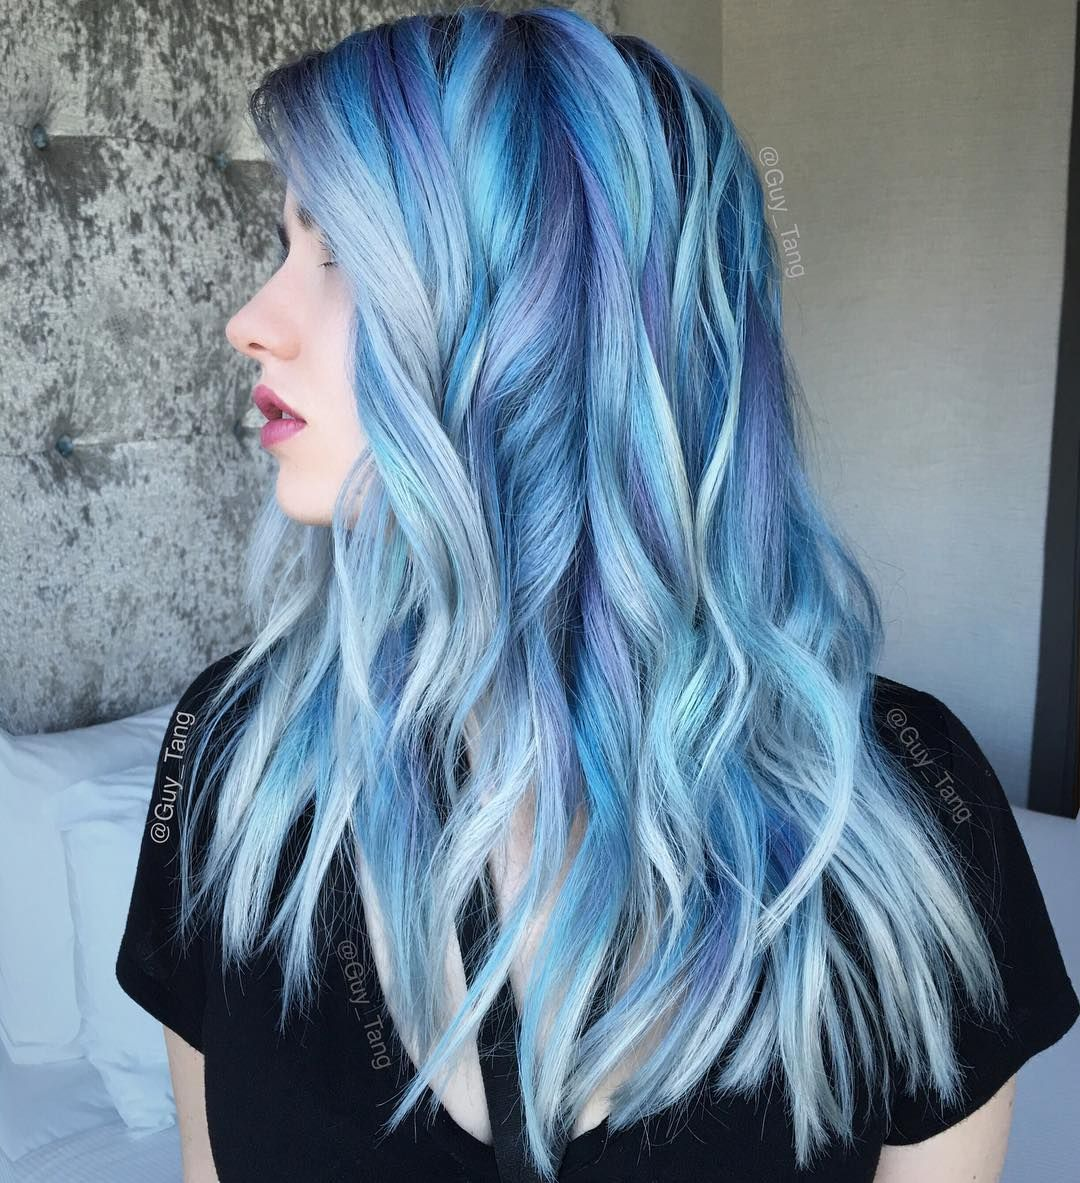 52 Ombre Rainbow Hair Colors To Try 2: Instagram Photo By Guy Tang Jul 1, 2016 At 12:13am UTC